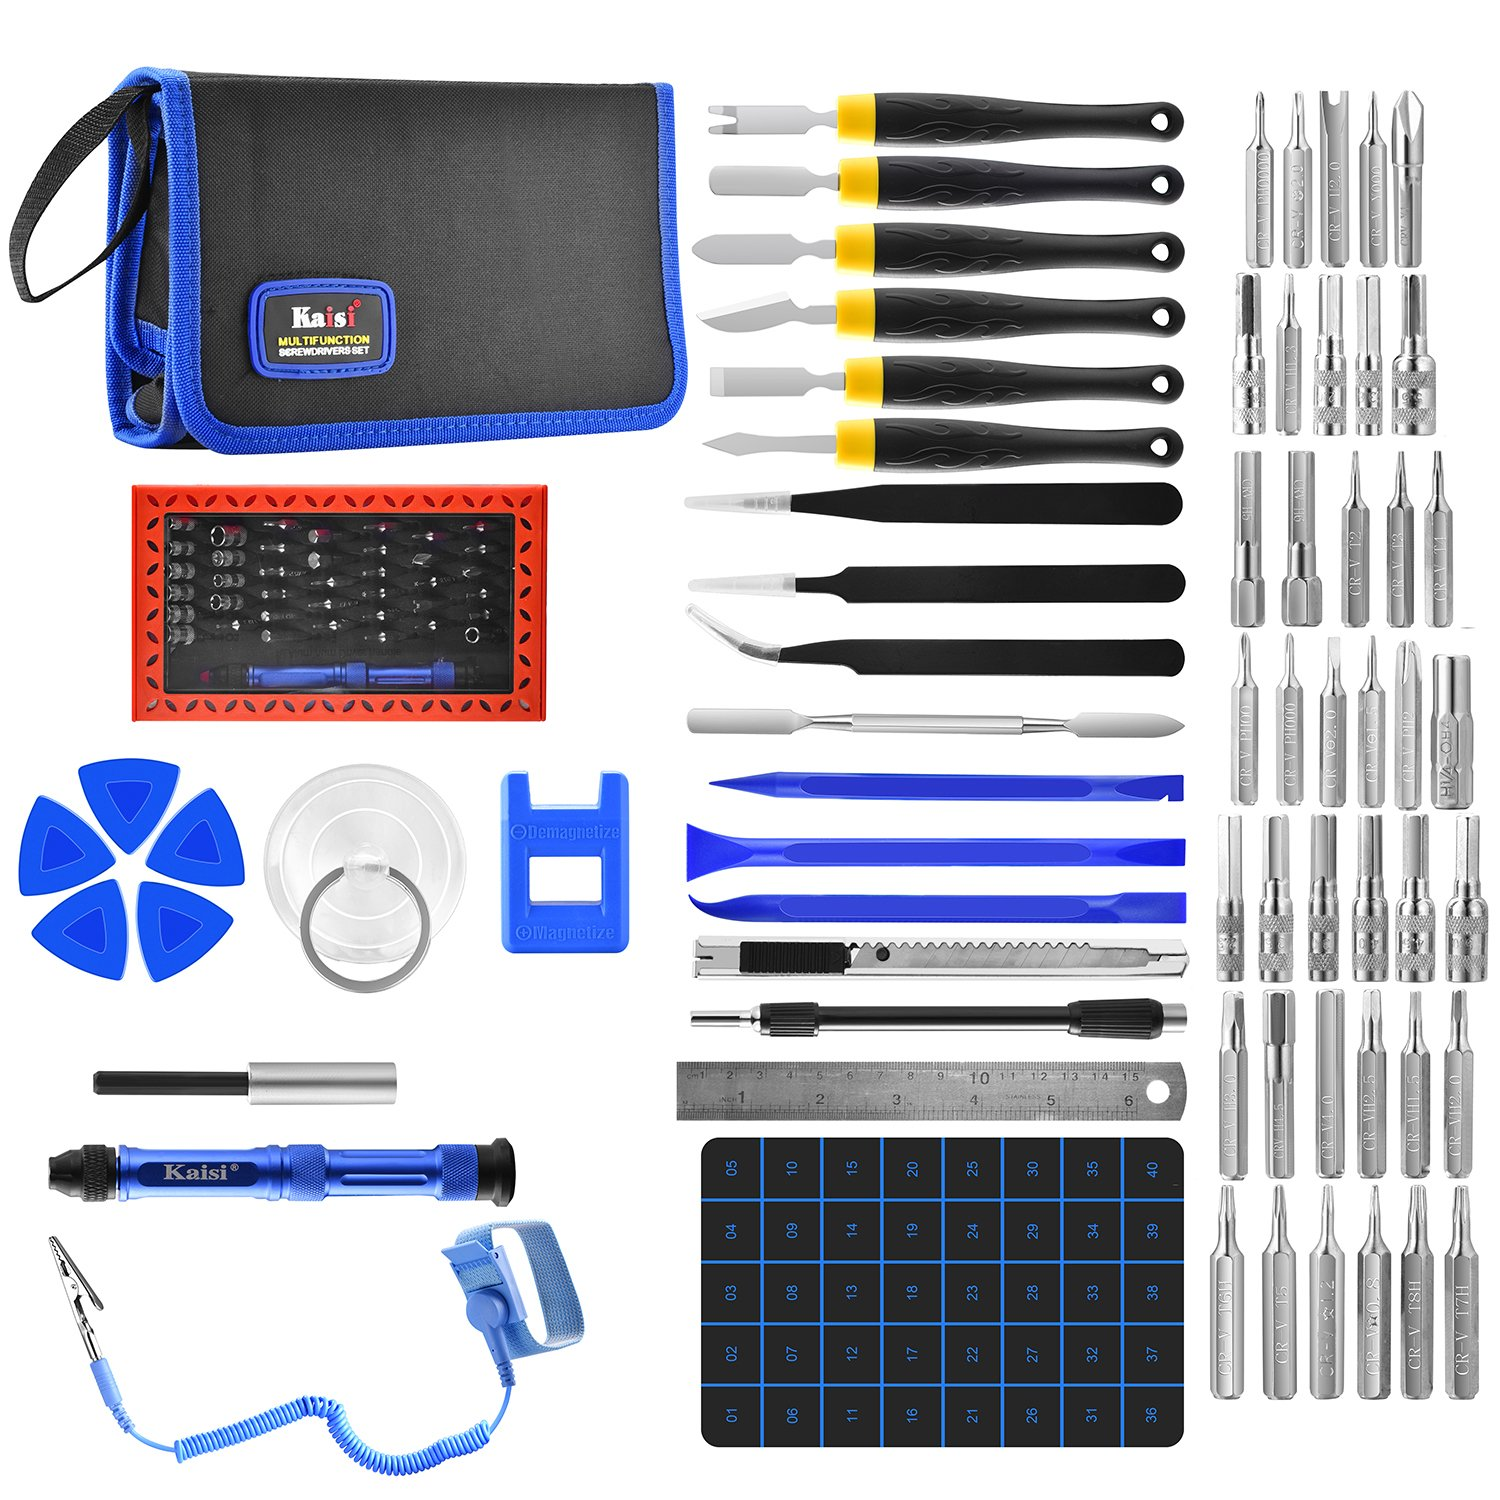 Kaisi 67 in 1 Precision Screwdriver Set with Magnetic Driver Kit, Professional Electronics Repair Tools Kit with Portable Bag Compatible For Cell Phone, iPad, iPod, MacBook, Laptops, Computer and More